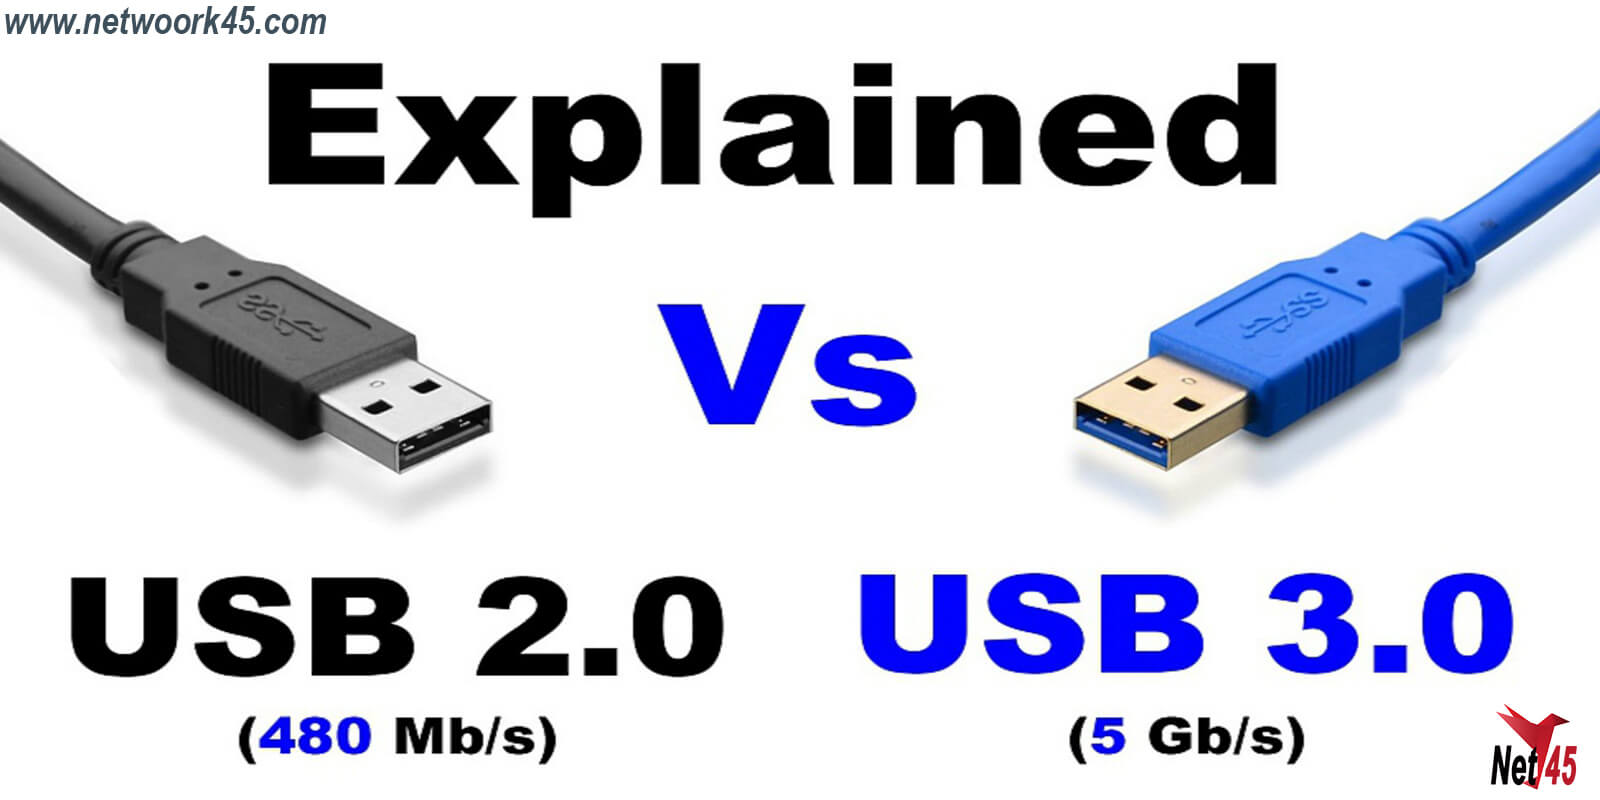 usb 3.0,usb 2.0,difference between usb 2.0 and 3.0,what is the difference between usb 2.0 and usb 3.0,usb 2.0 vs 3.0,difference between usb 2.0 and usb 3.0,usb 2.0 vs 3.0 vs 3.1,usb 3.1,usb (invention),what is difference between usb 2.0 and 3.0,difference between usb 3.1 and 3.0,difference between usb 3.1 and 3,difference of usb 2.0 and 3.0